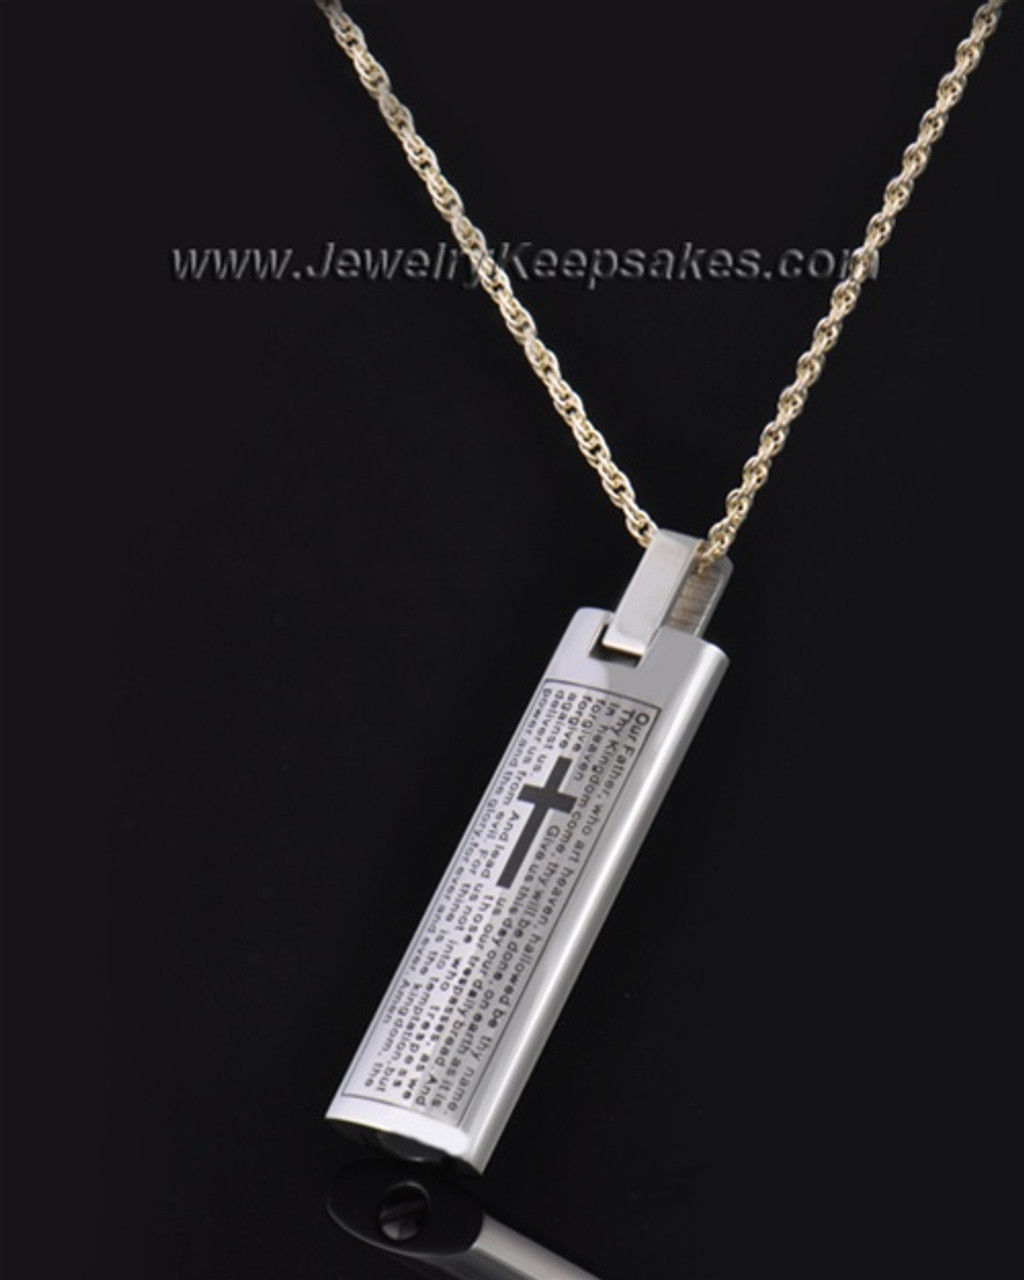 a619b8d8eee36 Stainless Steel The Lord's Prayer Cylinder